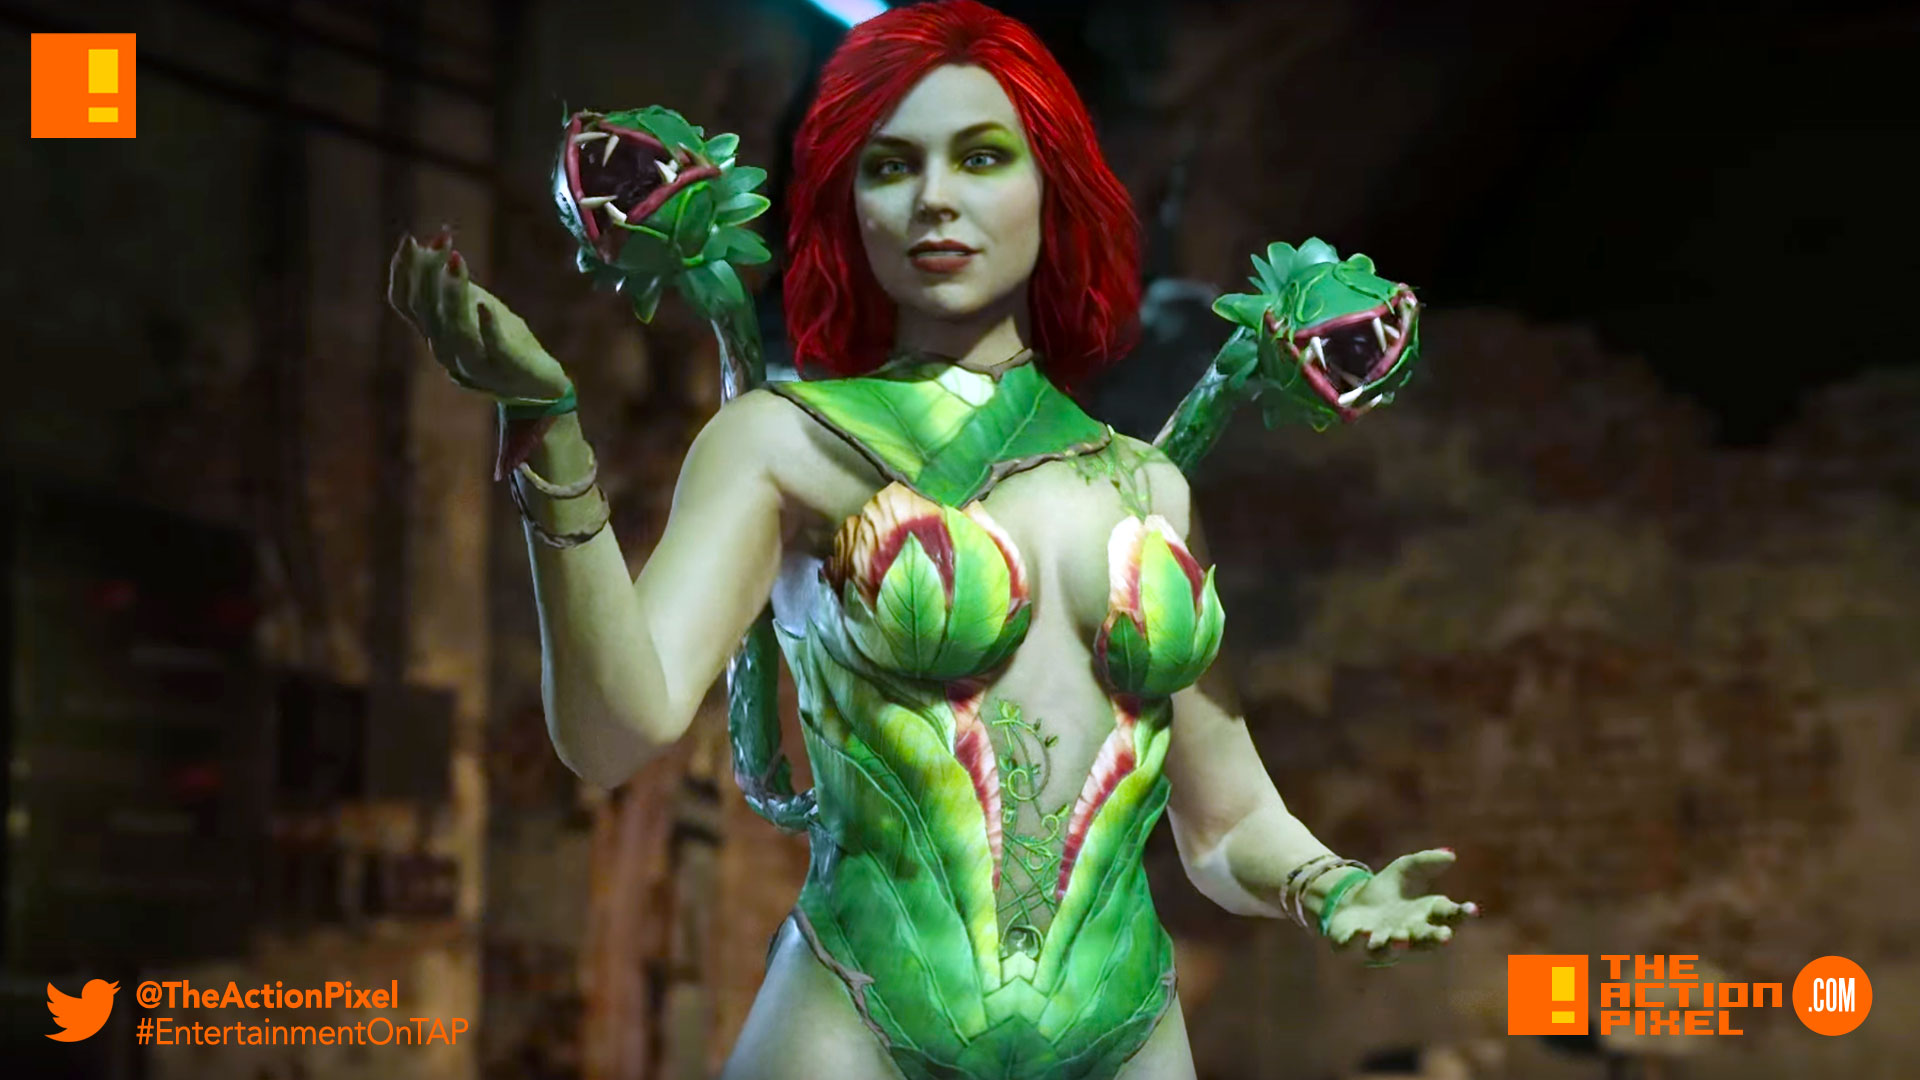 injustice 2, wb games, netherrealm studios, the action pixel, dc comics, warner bros. entertainment , the action pixel, superman, dc comics, trailer, introducing poison ivy,poison ivy